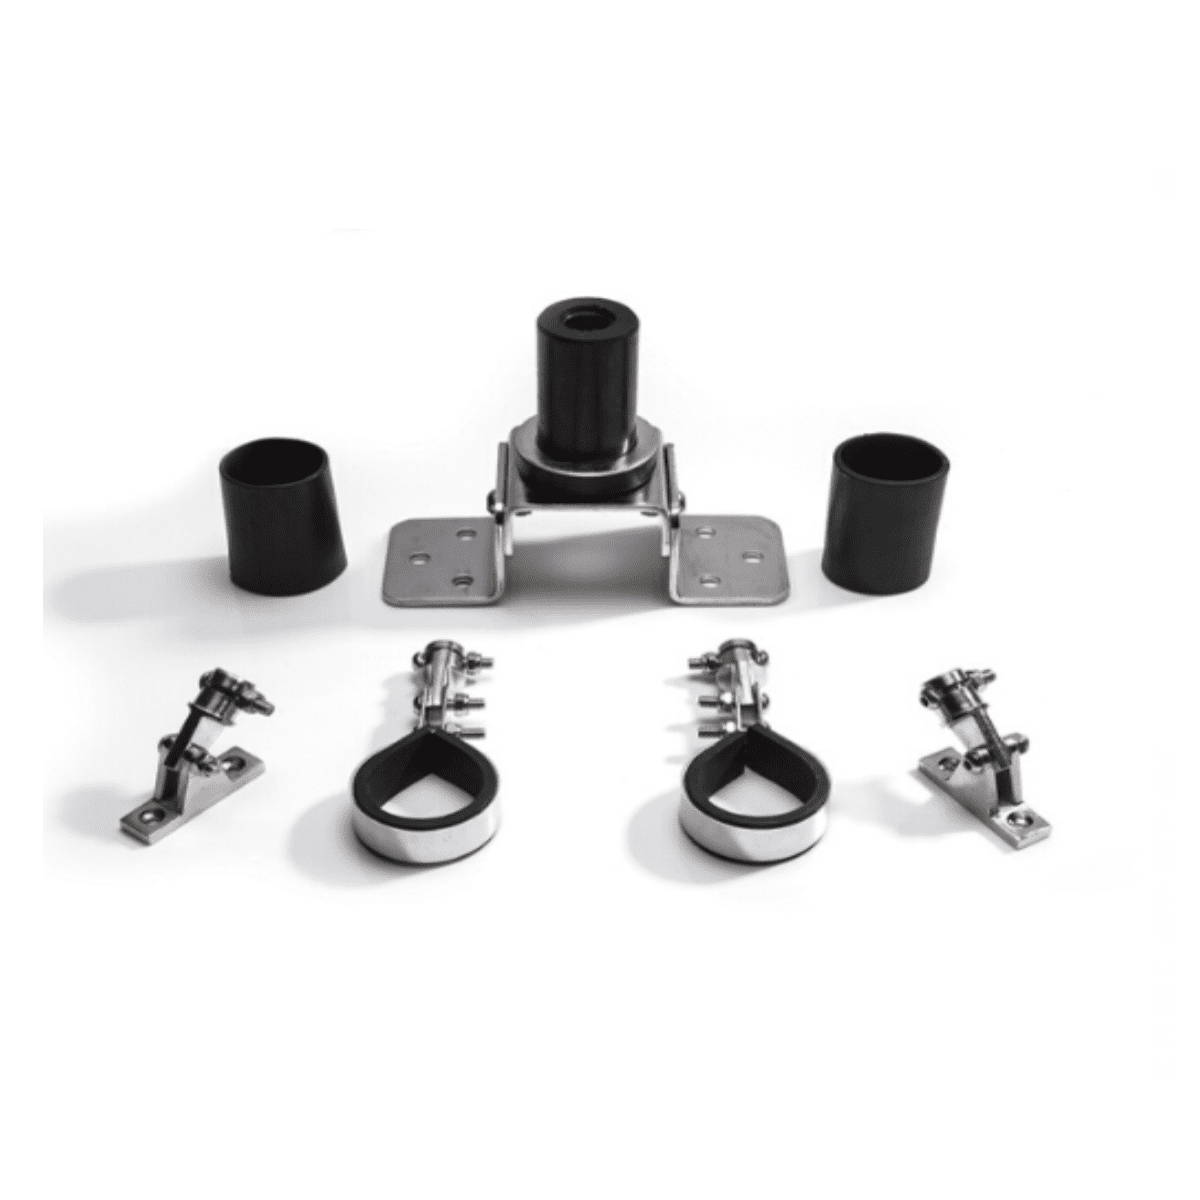 Silentwind Yacht Mast Mounting Kit 2 on Sale